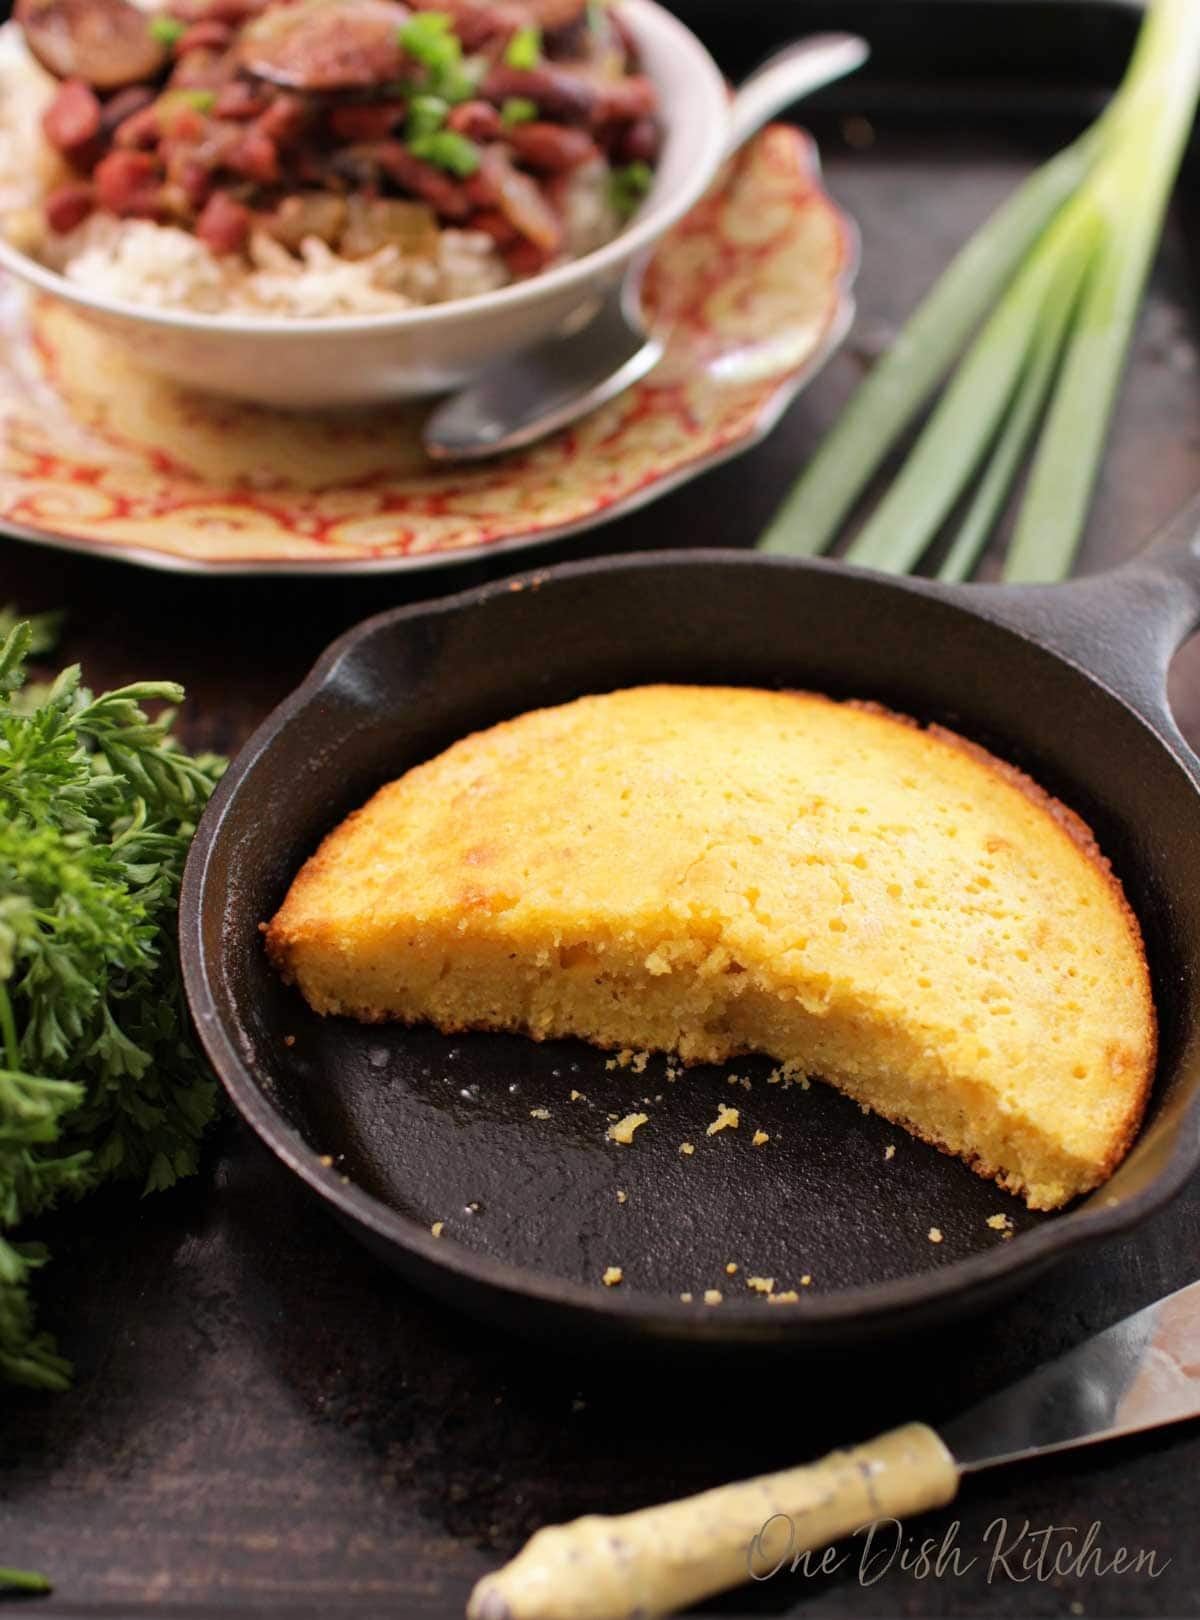 Cornbread cut in half in a small cast iron skillet next to a bowl of red beans and rice